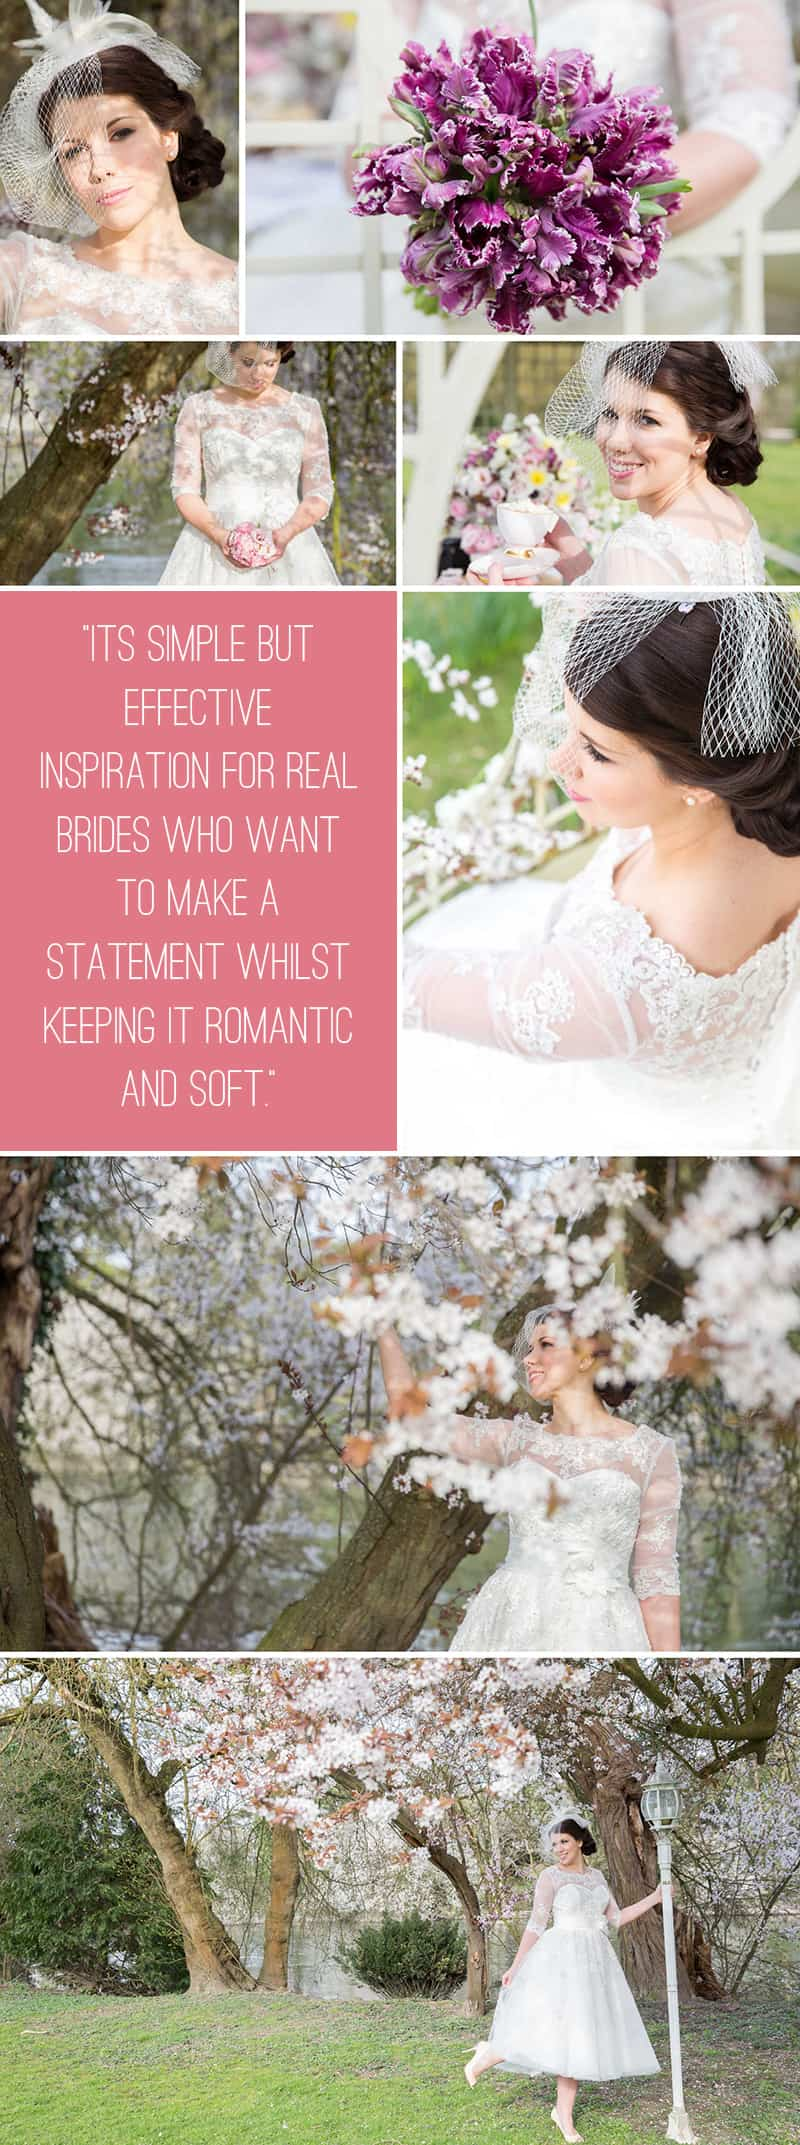 BLUSH PINK SHABBY CHIC STYLED SHOOT4